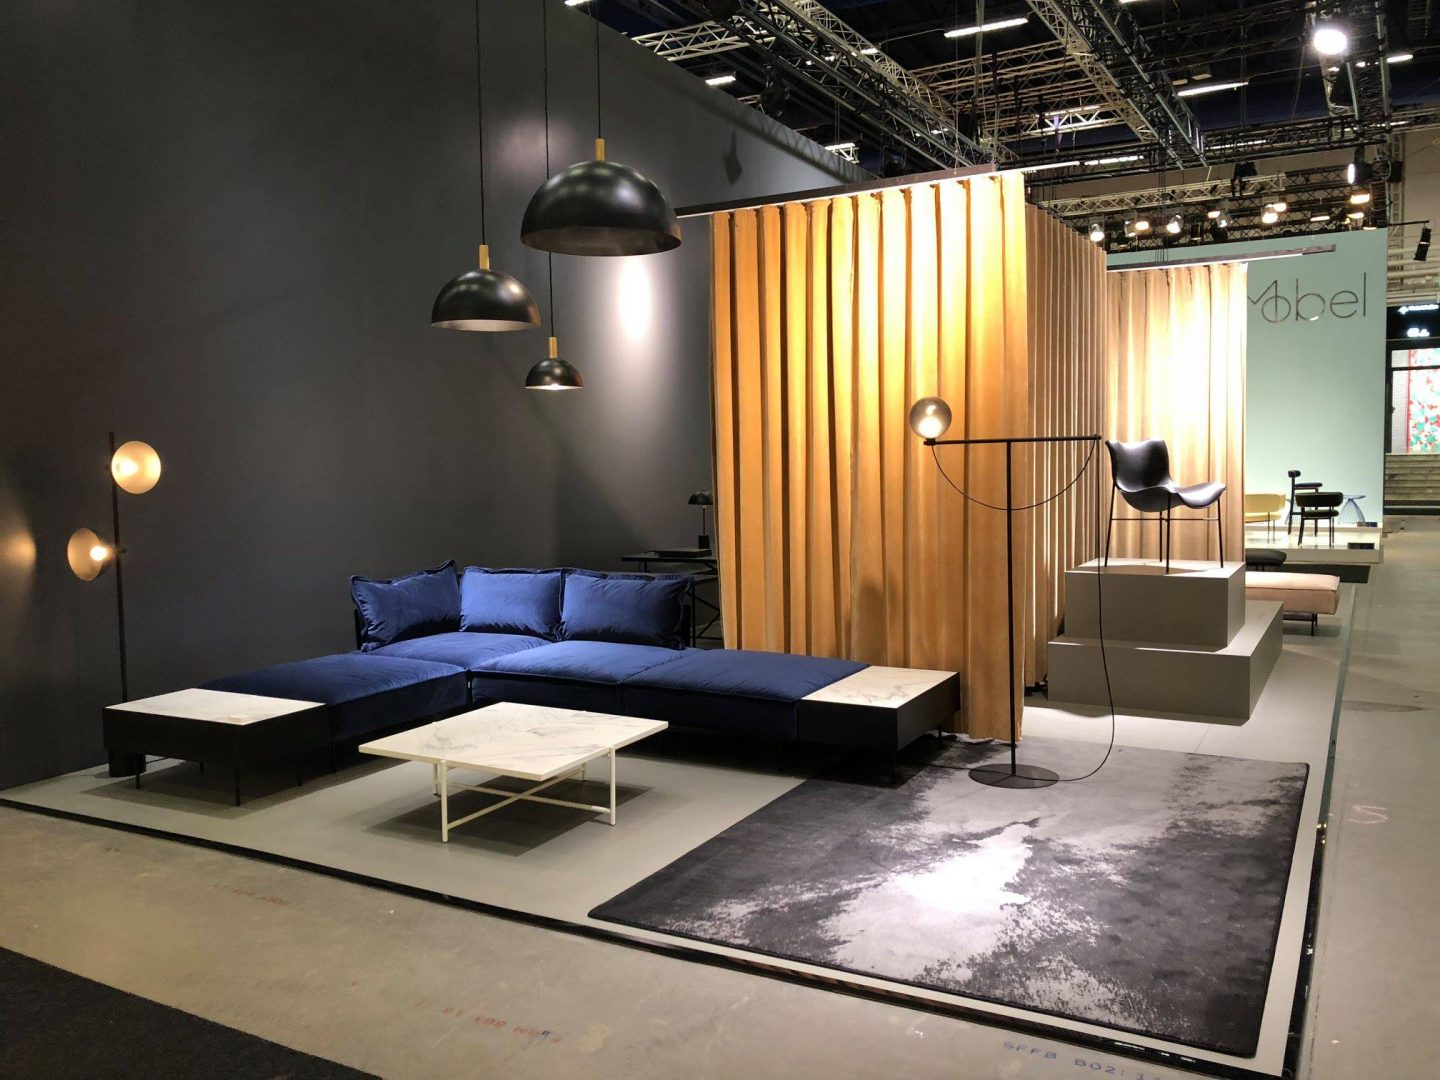 Stockholm furniture fair, hellopeagreen, Hardvark, interiors blog, trade show report